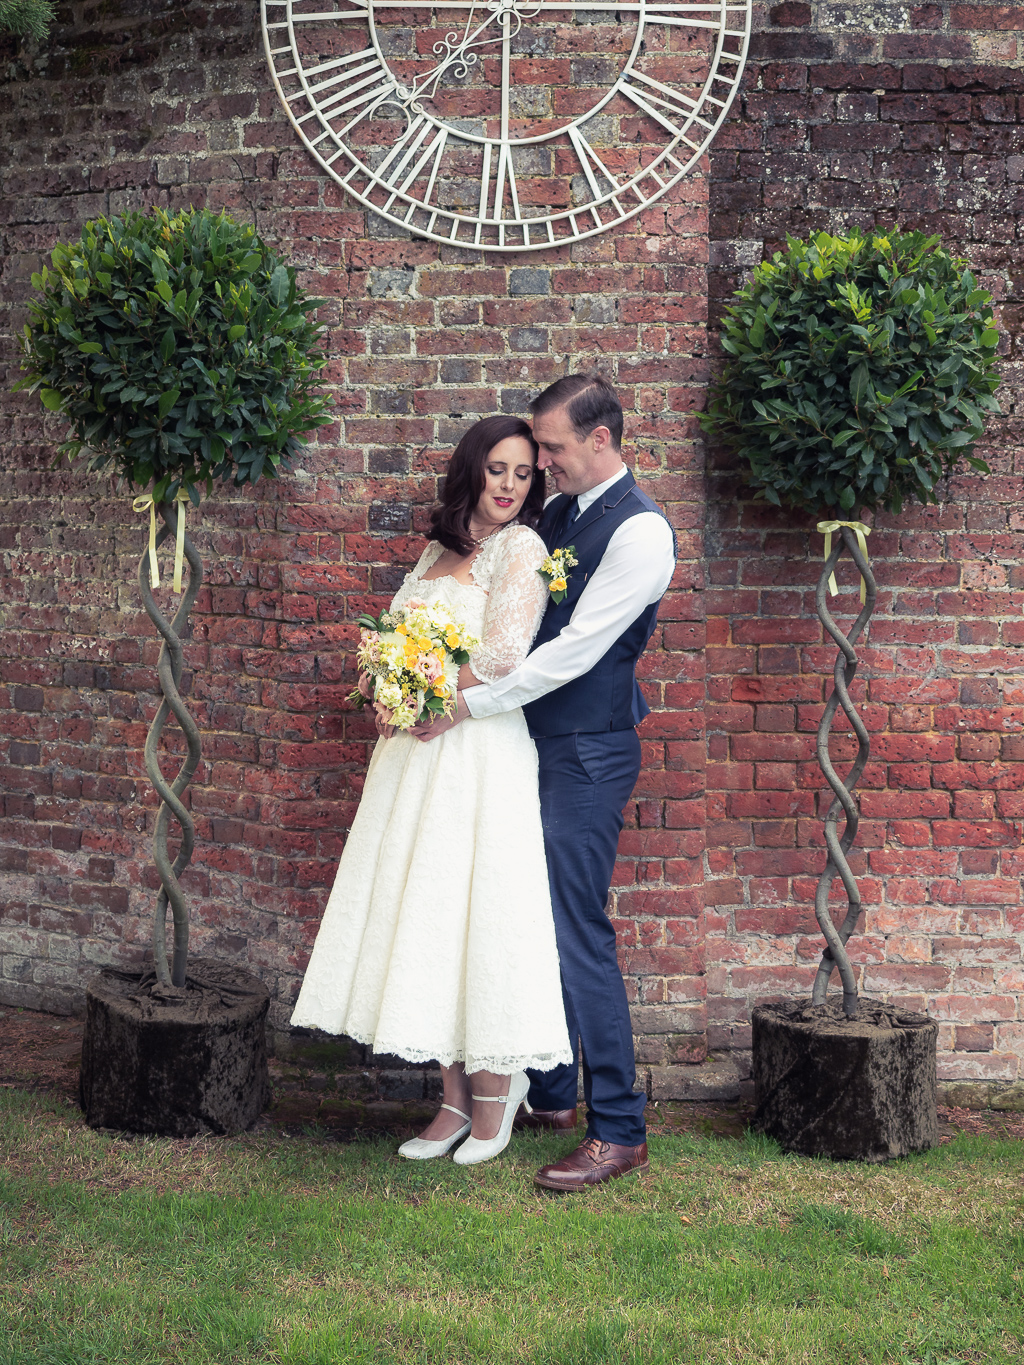 Traditional vintage styled wedding photoshoot at The Orangery Suite, photographer credit Dom Brenton Photography (13)